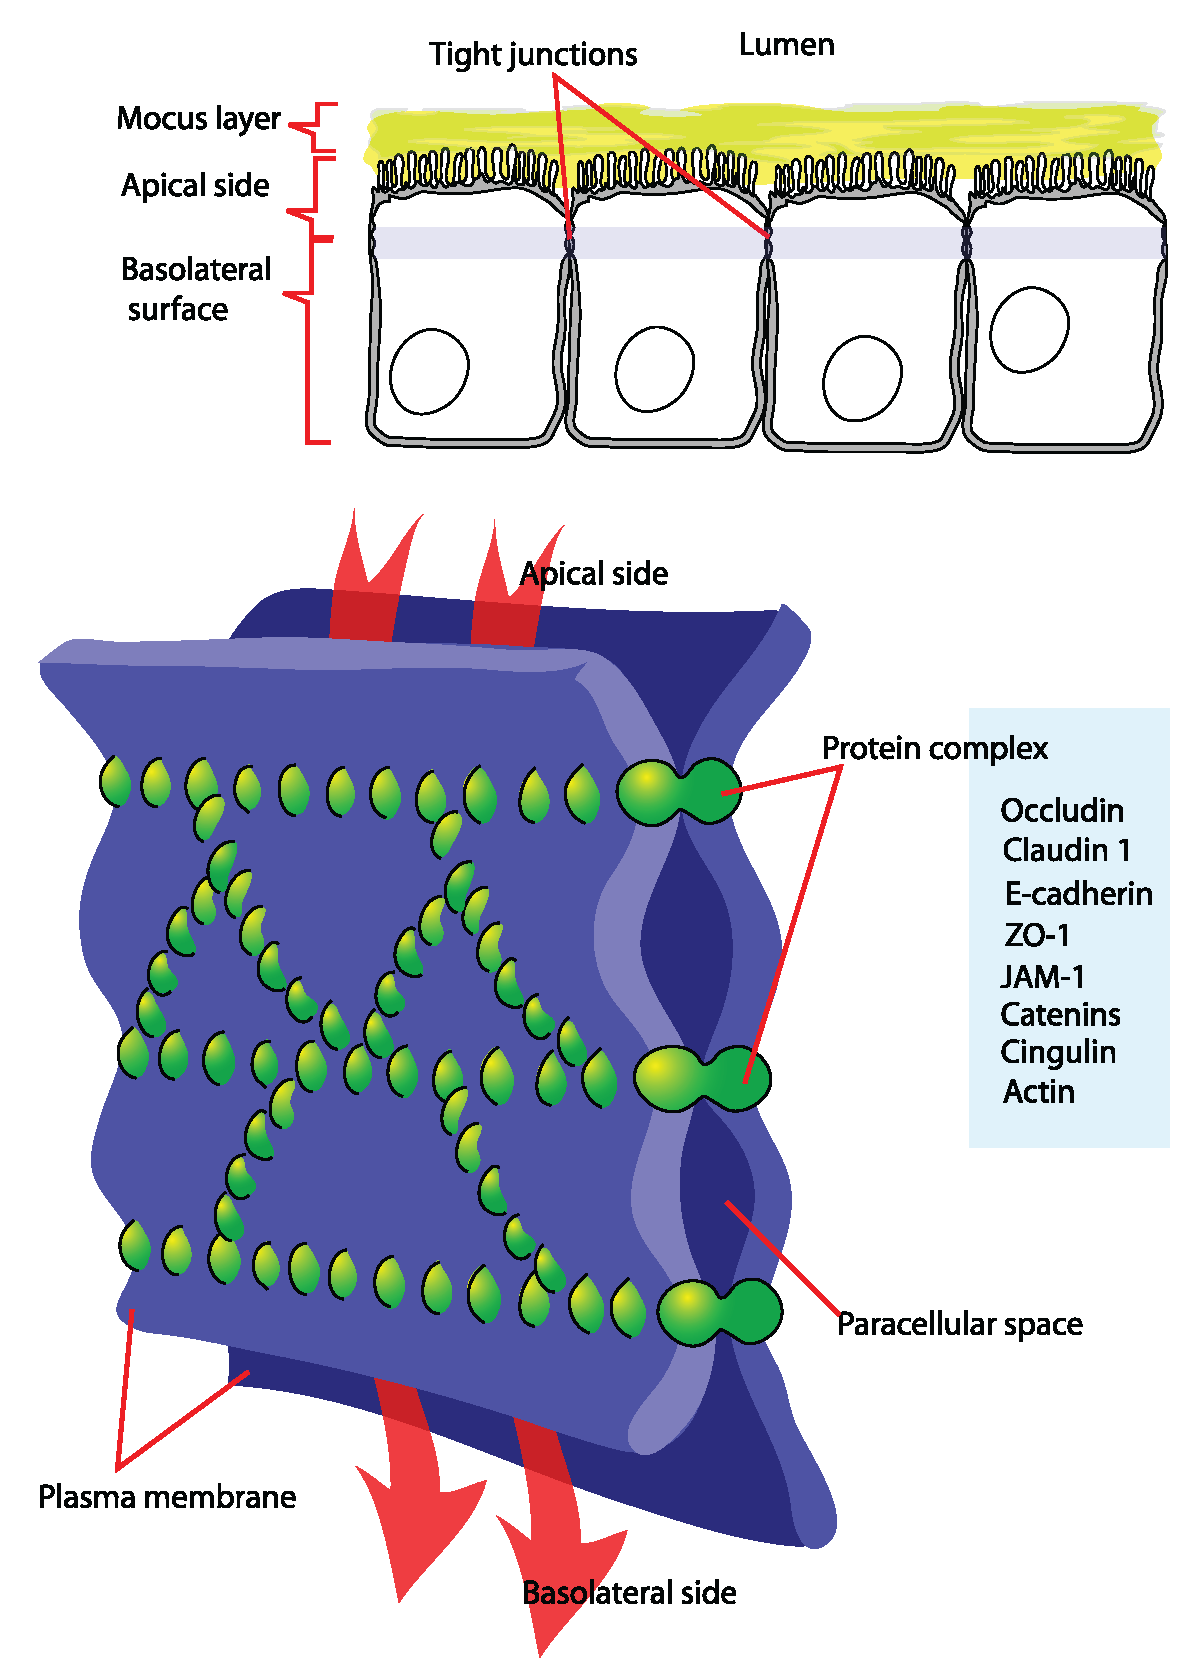 This is a color diagram of tight junction components in a plasma membrane. It shows how tight junctions form seals that create paracellular spaces throughout the plasma membrane.